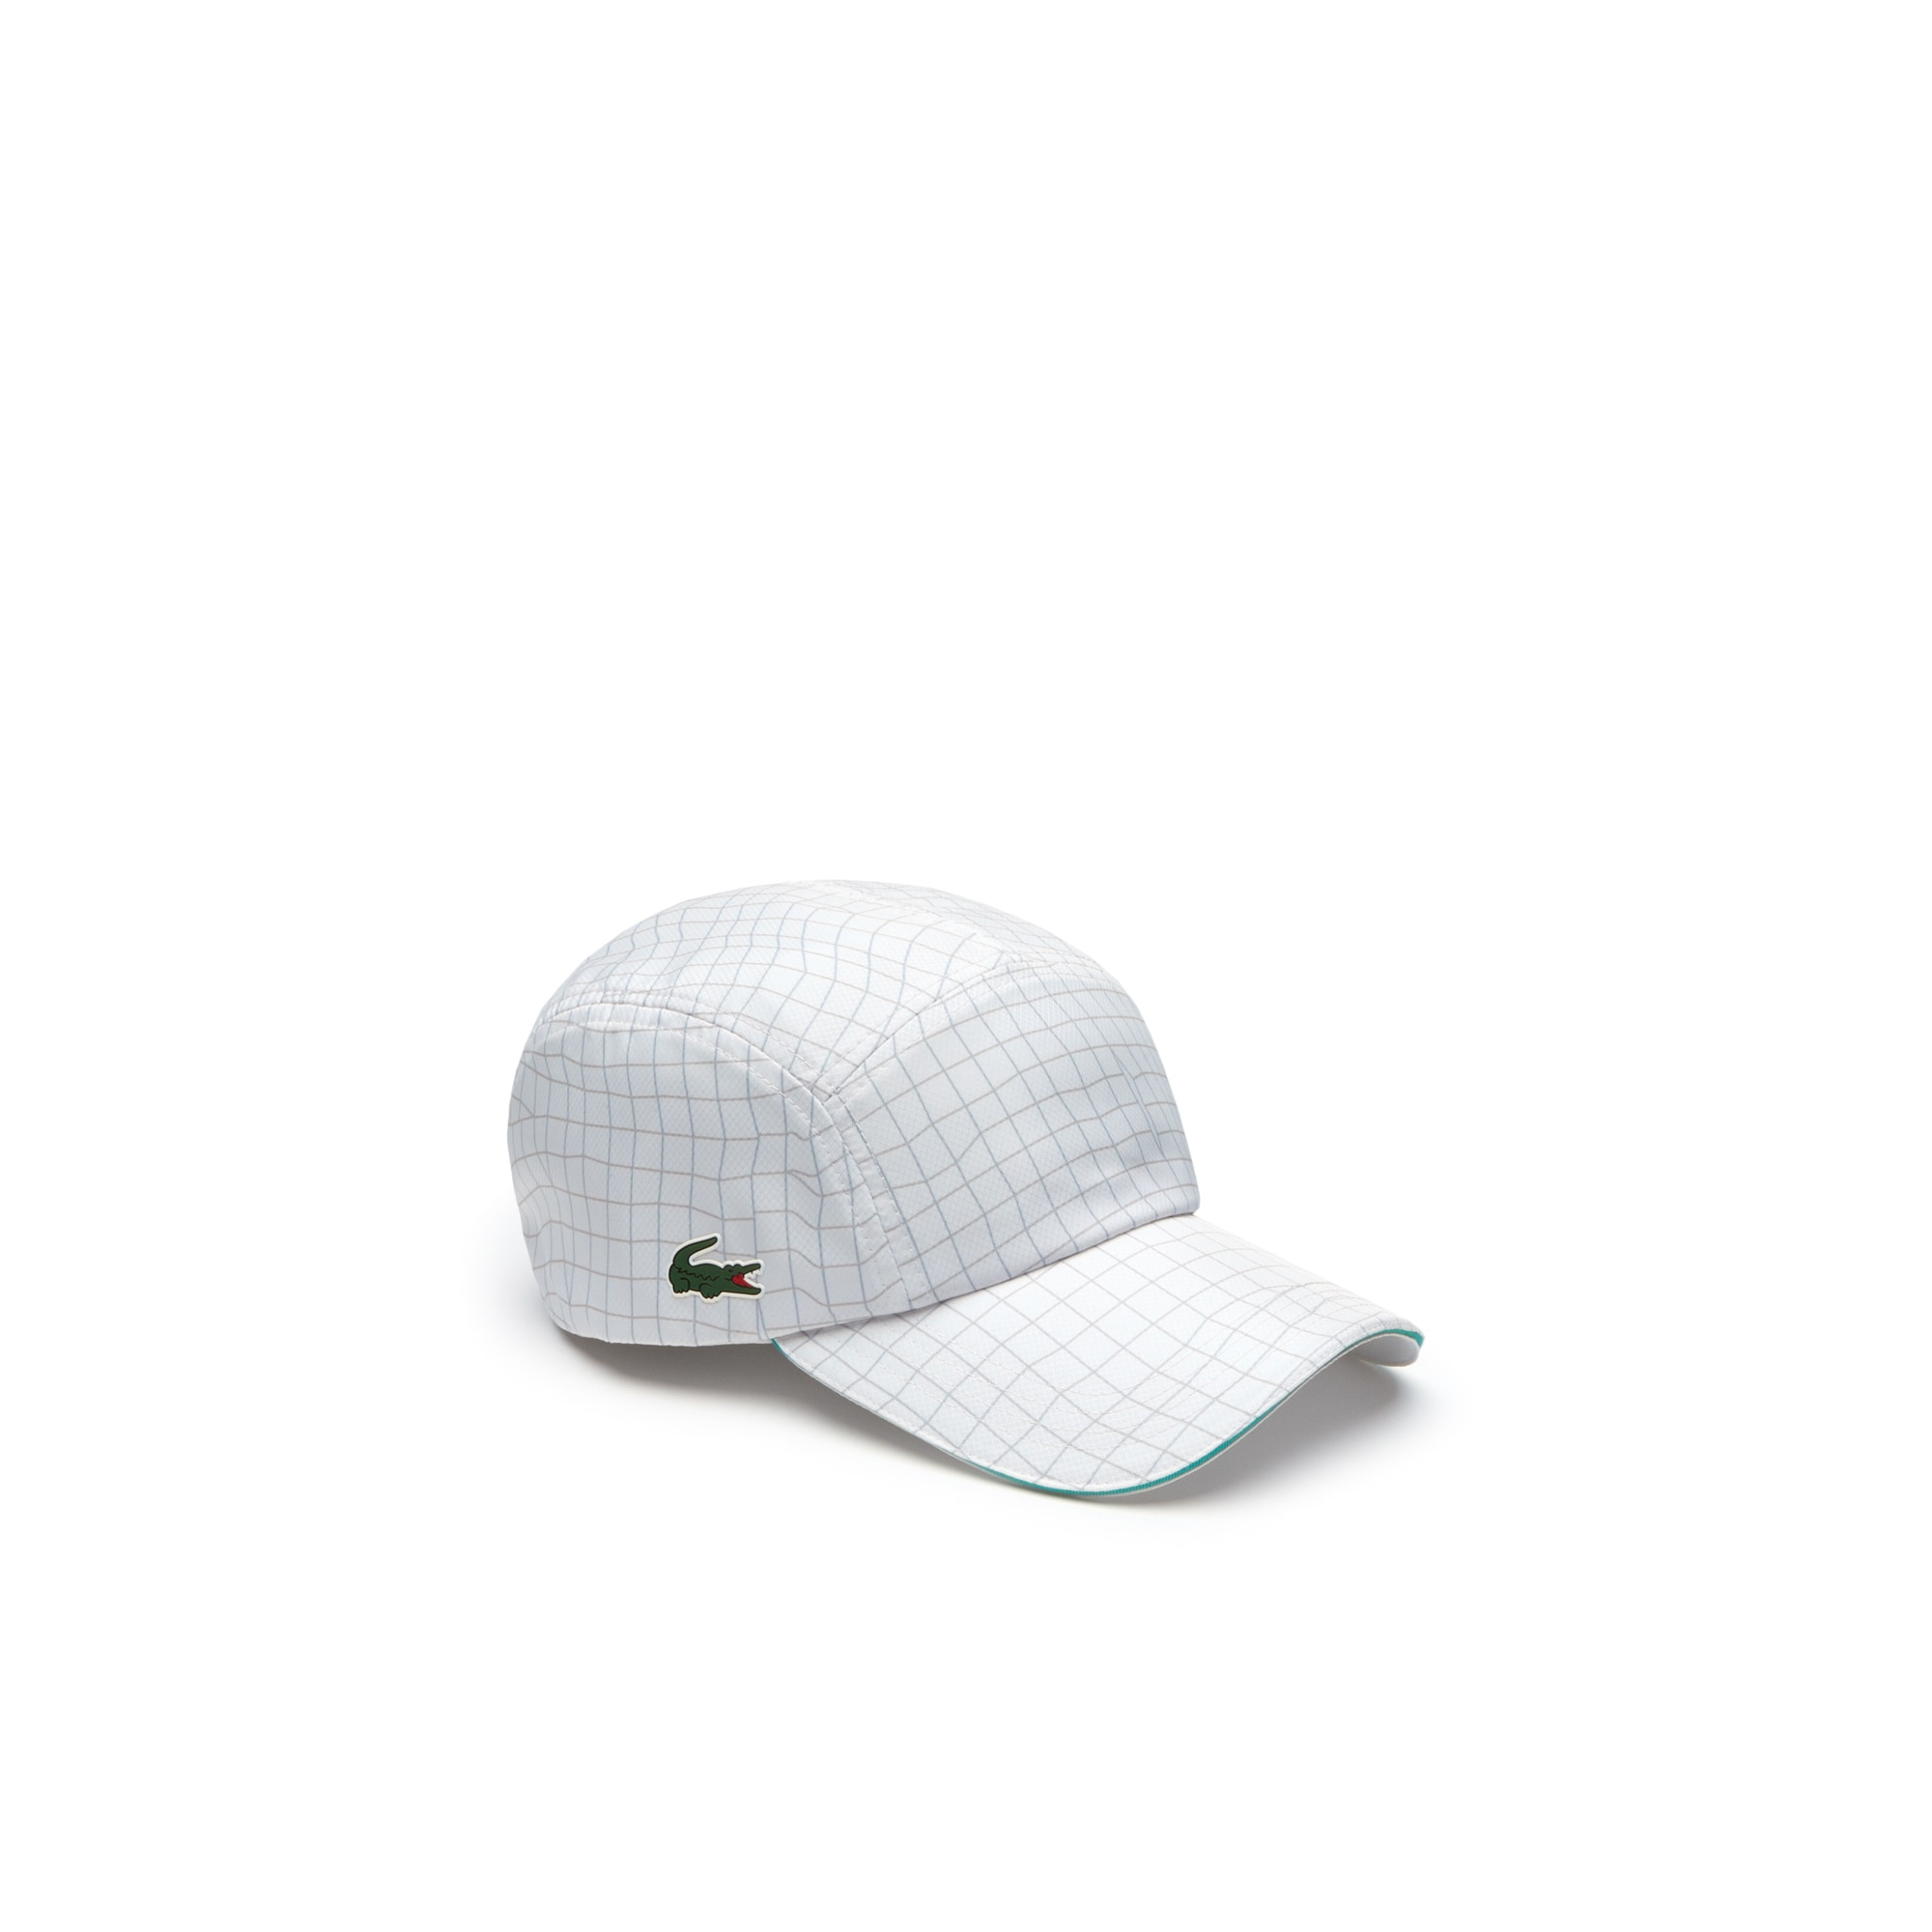 Mens 라코스테 Lacoste SPORT Tennis Colorblock Taffeta Cap,white / grey / green / white